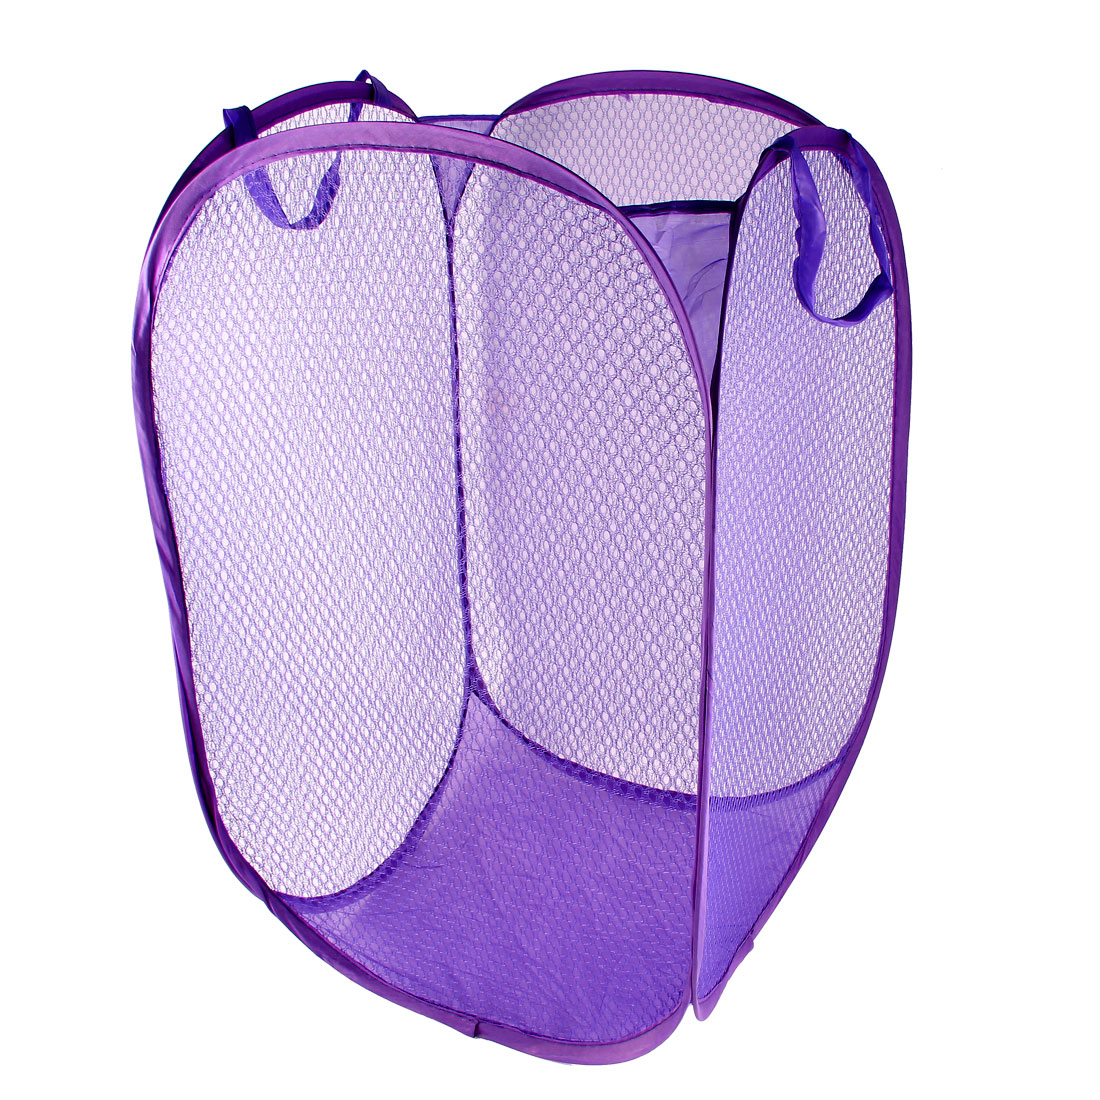 House Compact Pop Up Mesh Foldable Laundry Basket Bag Bin Hamper Storage Purple